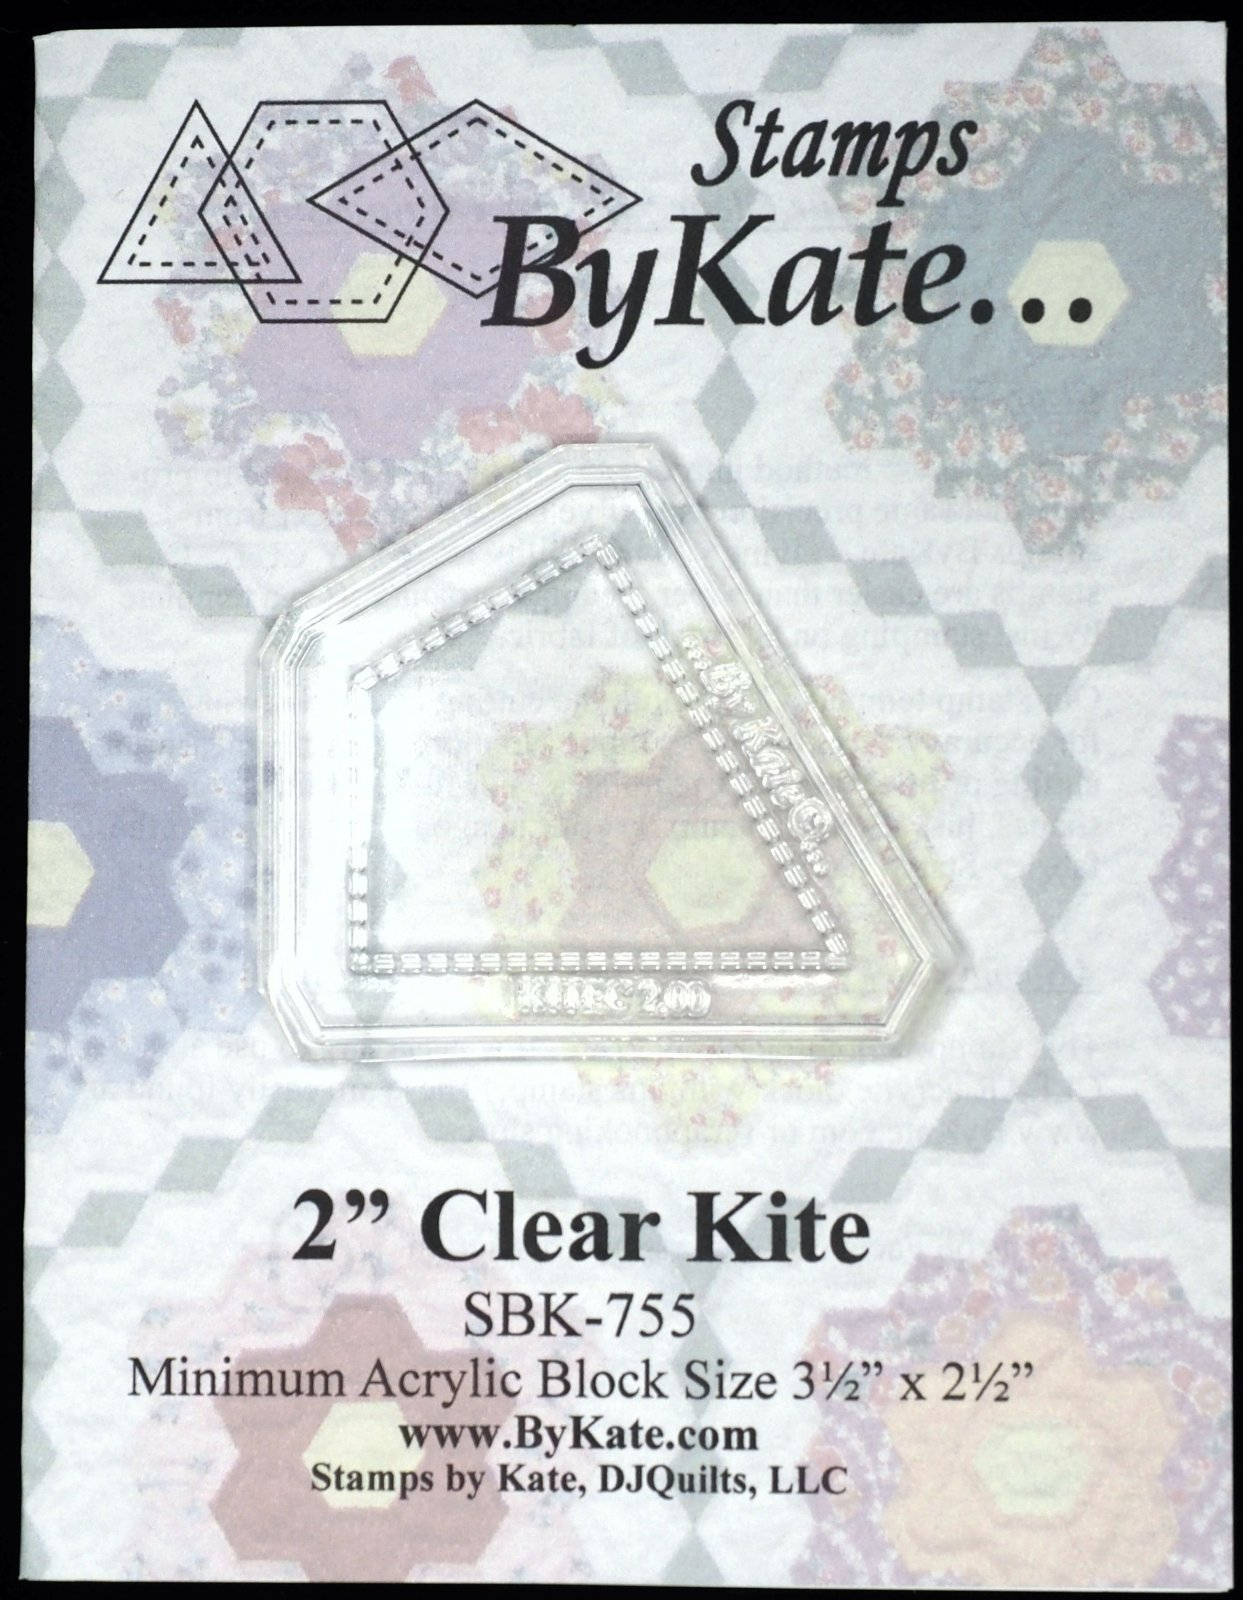 Clear Kite Stamps